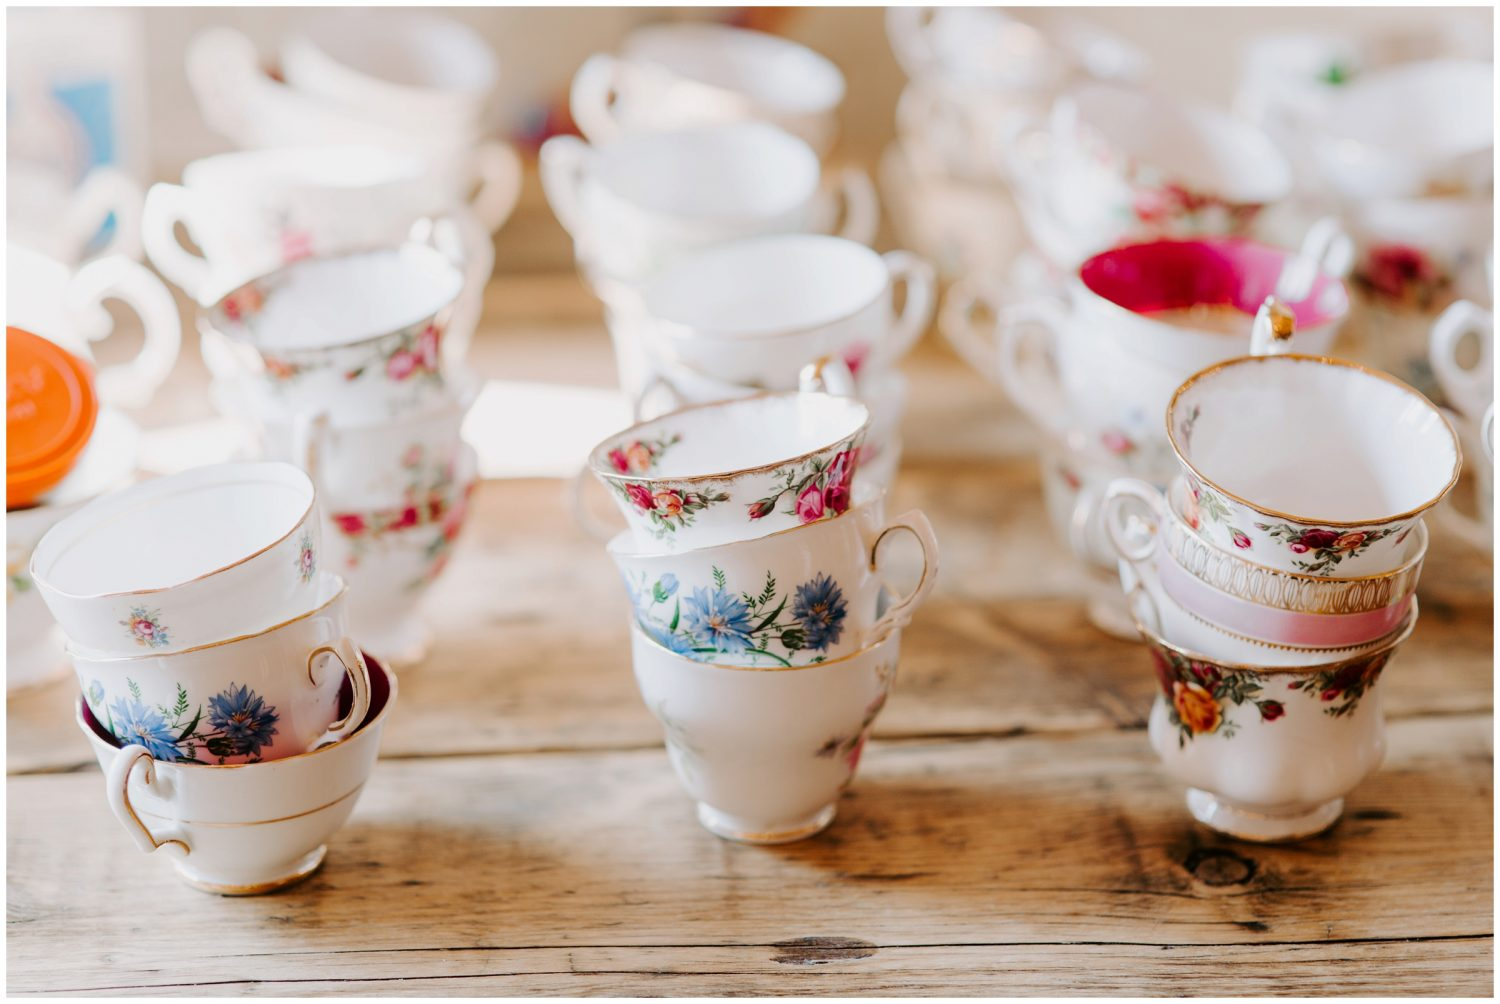 teacups at wedding